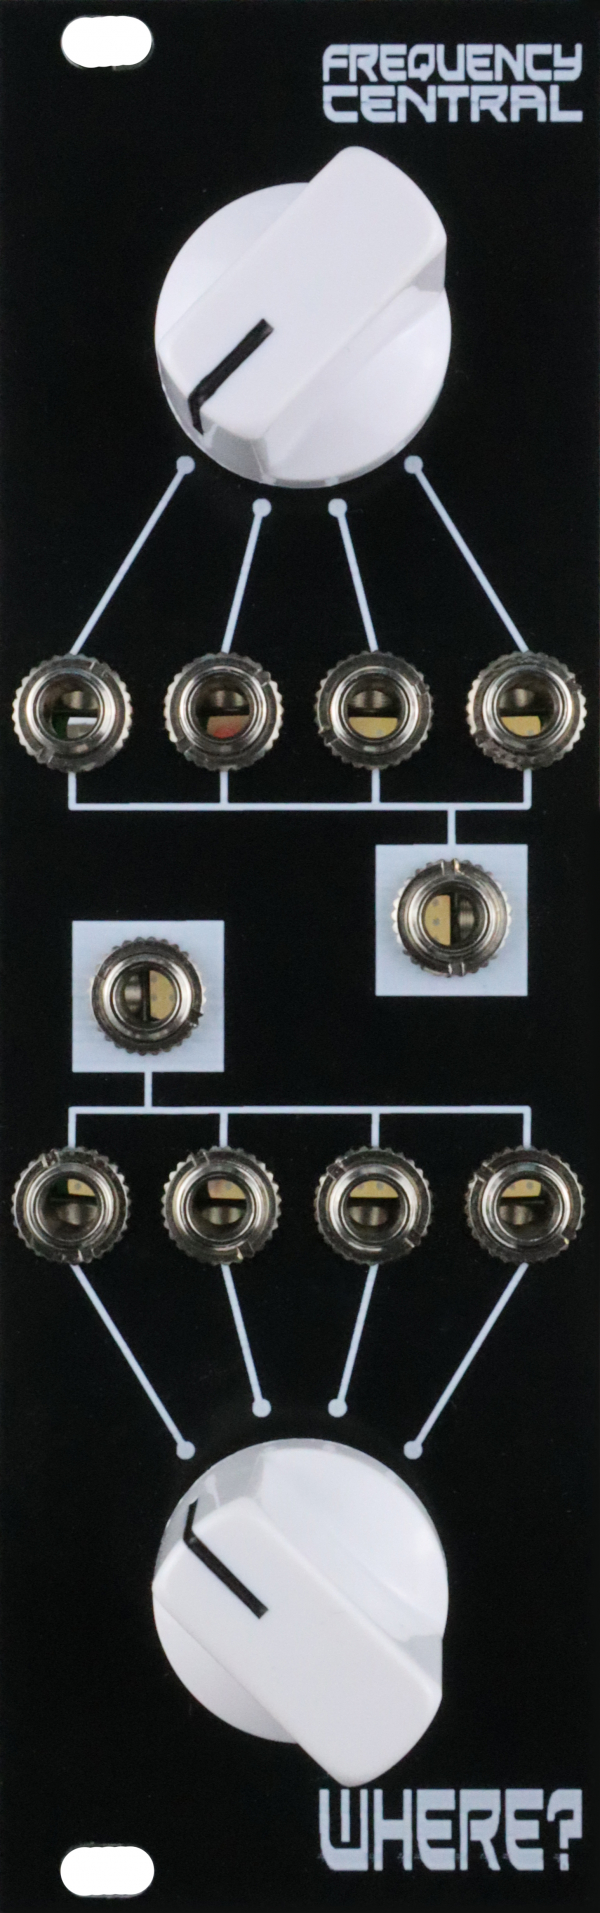 Assembled Frequency Central Where?